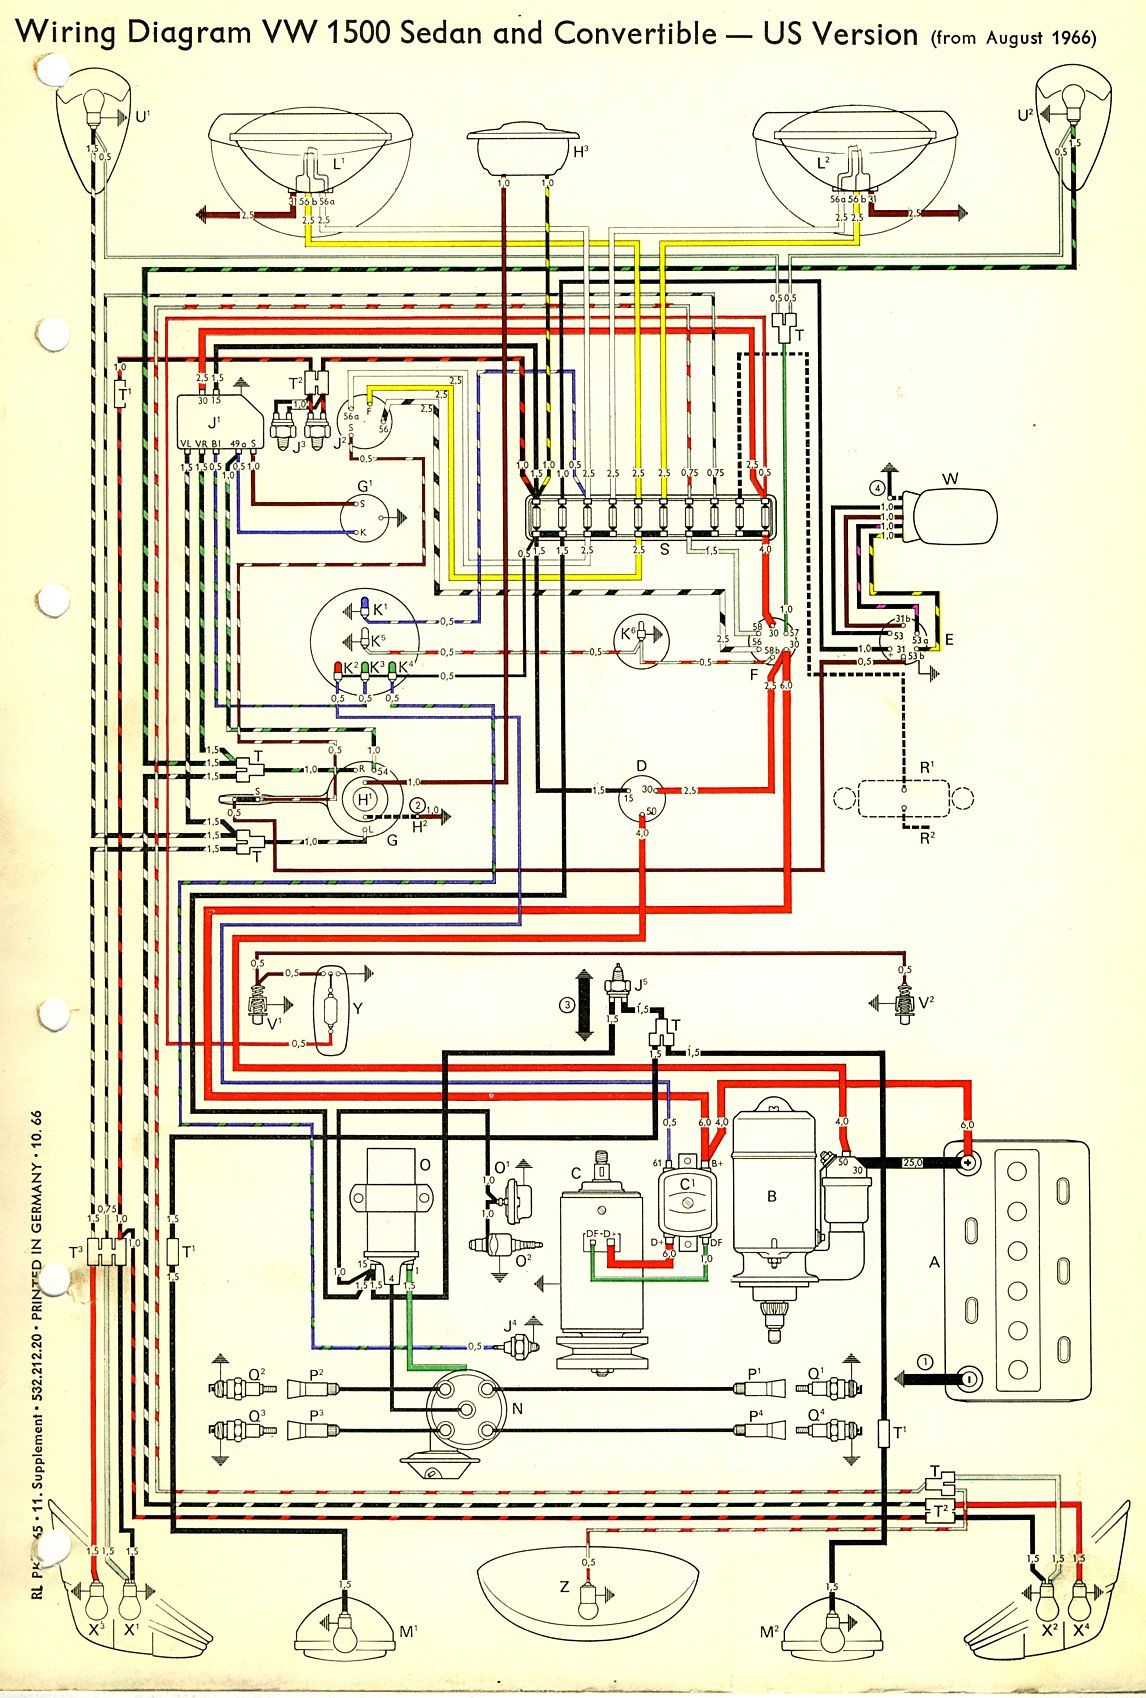 1967 beetle wiring diagram (usa) | vw super beetle, volkswagen beetle, vw  beetles  pinterest